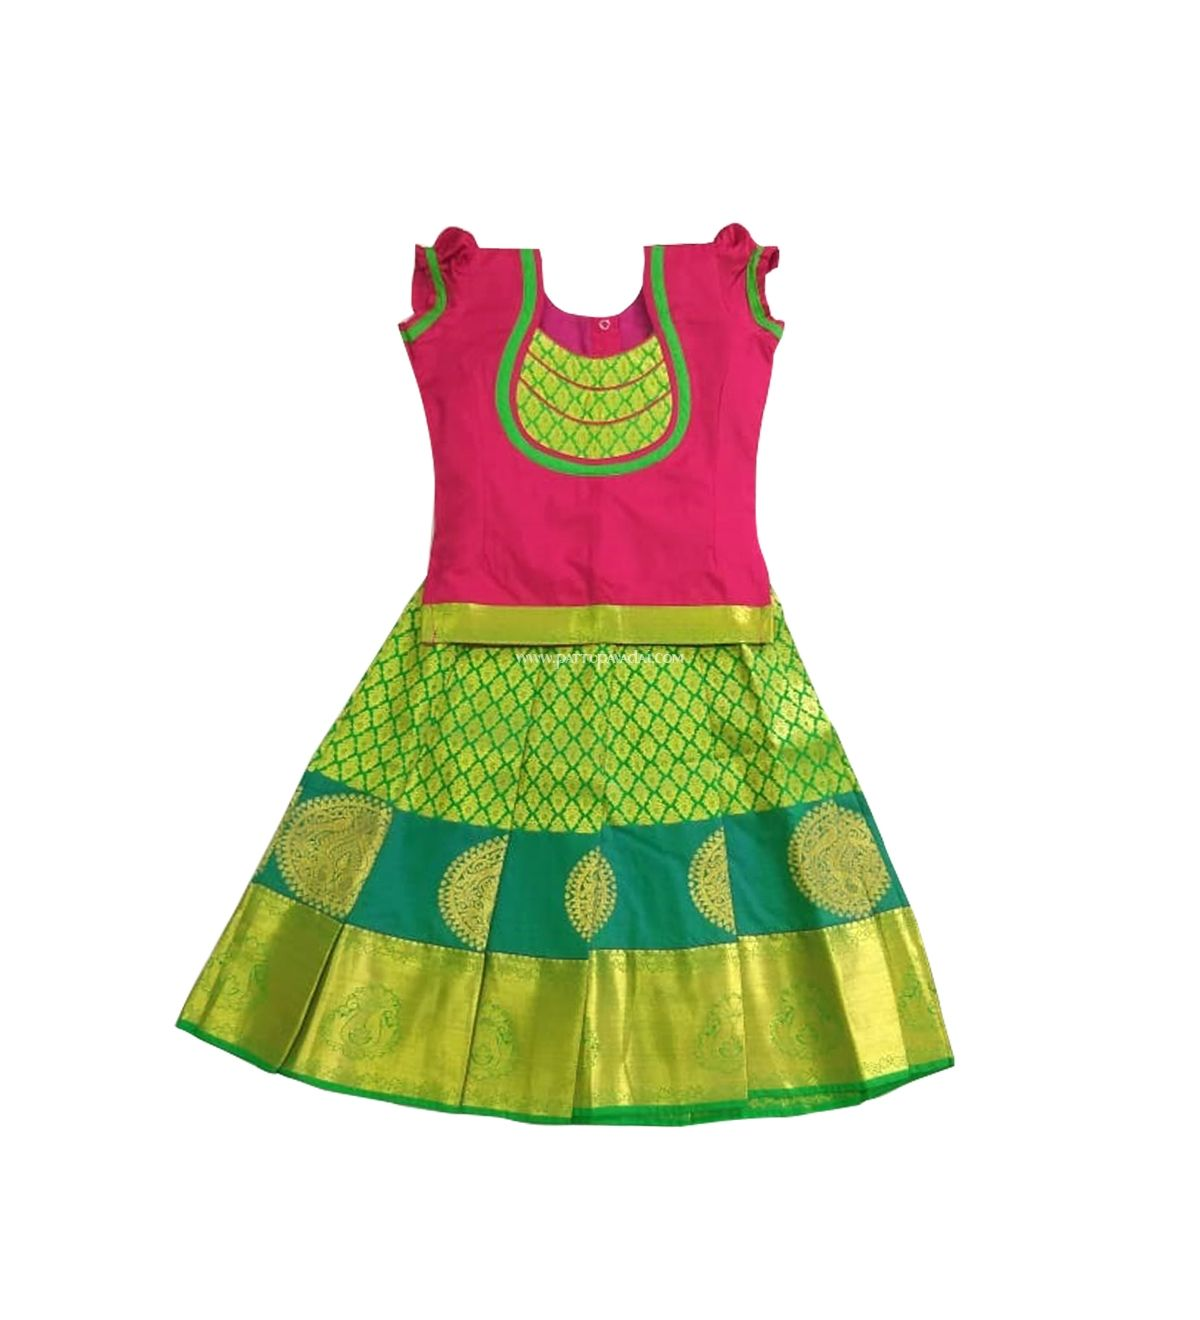 f7803fe20216ee Beautiful  traditional parrot green and pink  pattu  pavadai. Ages 0-10Y.  combowww.pattupavadai.com product kids-parrot-green-and-pink-pure-silk -pavadai